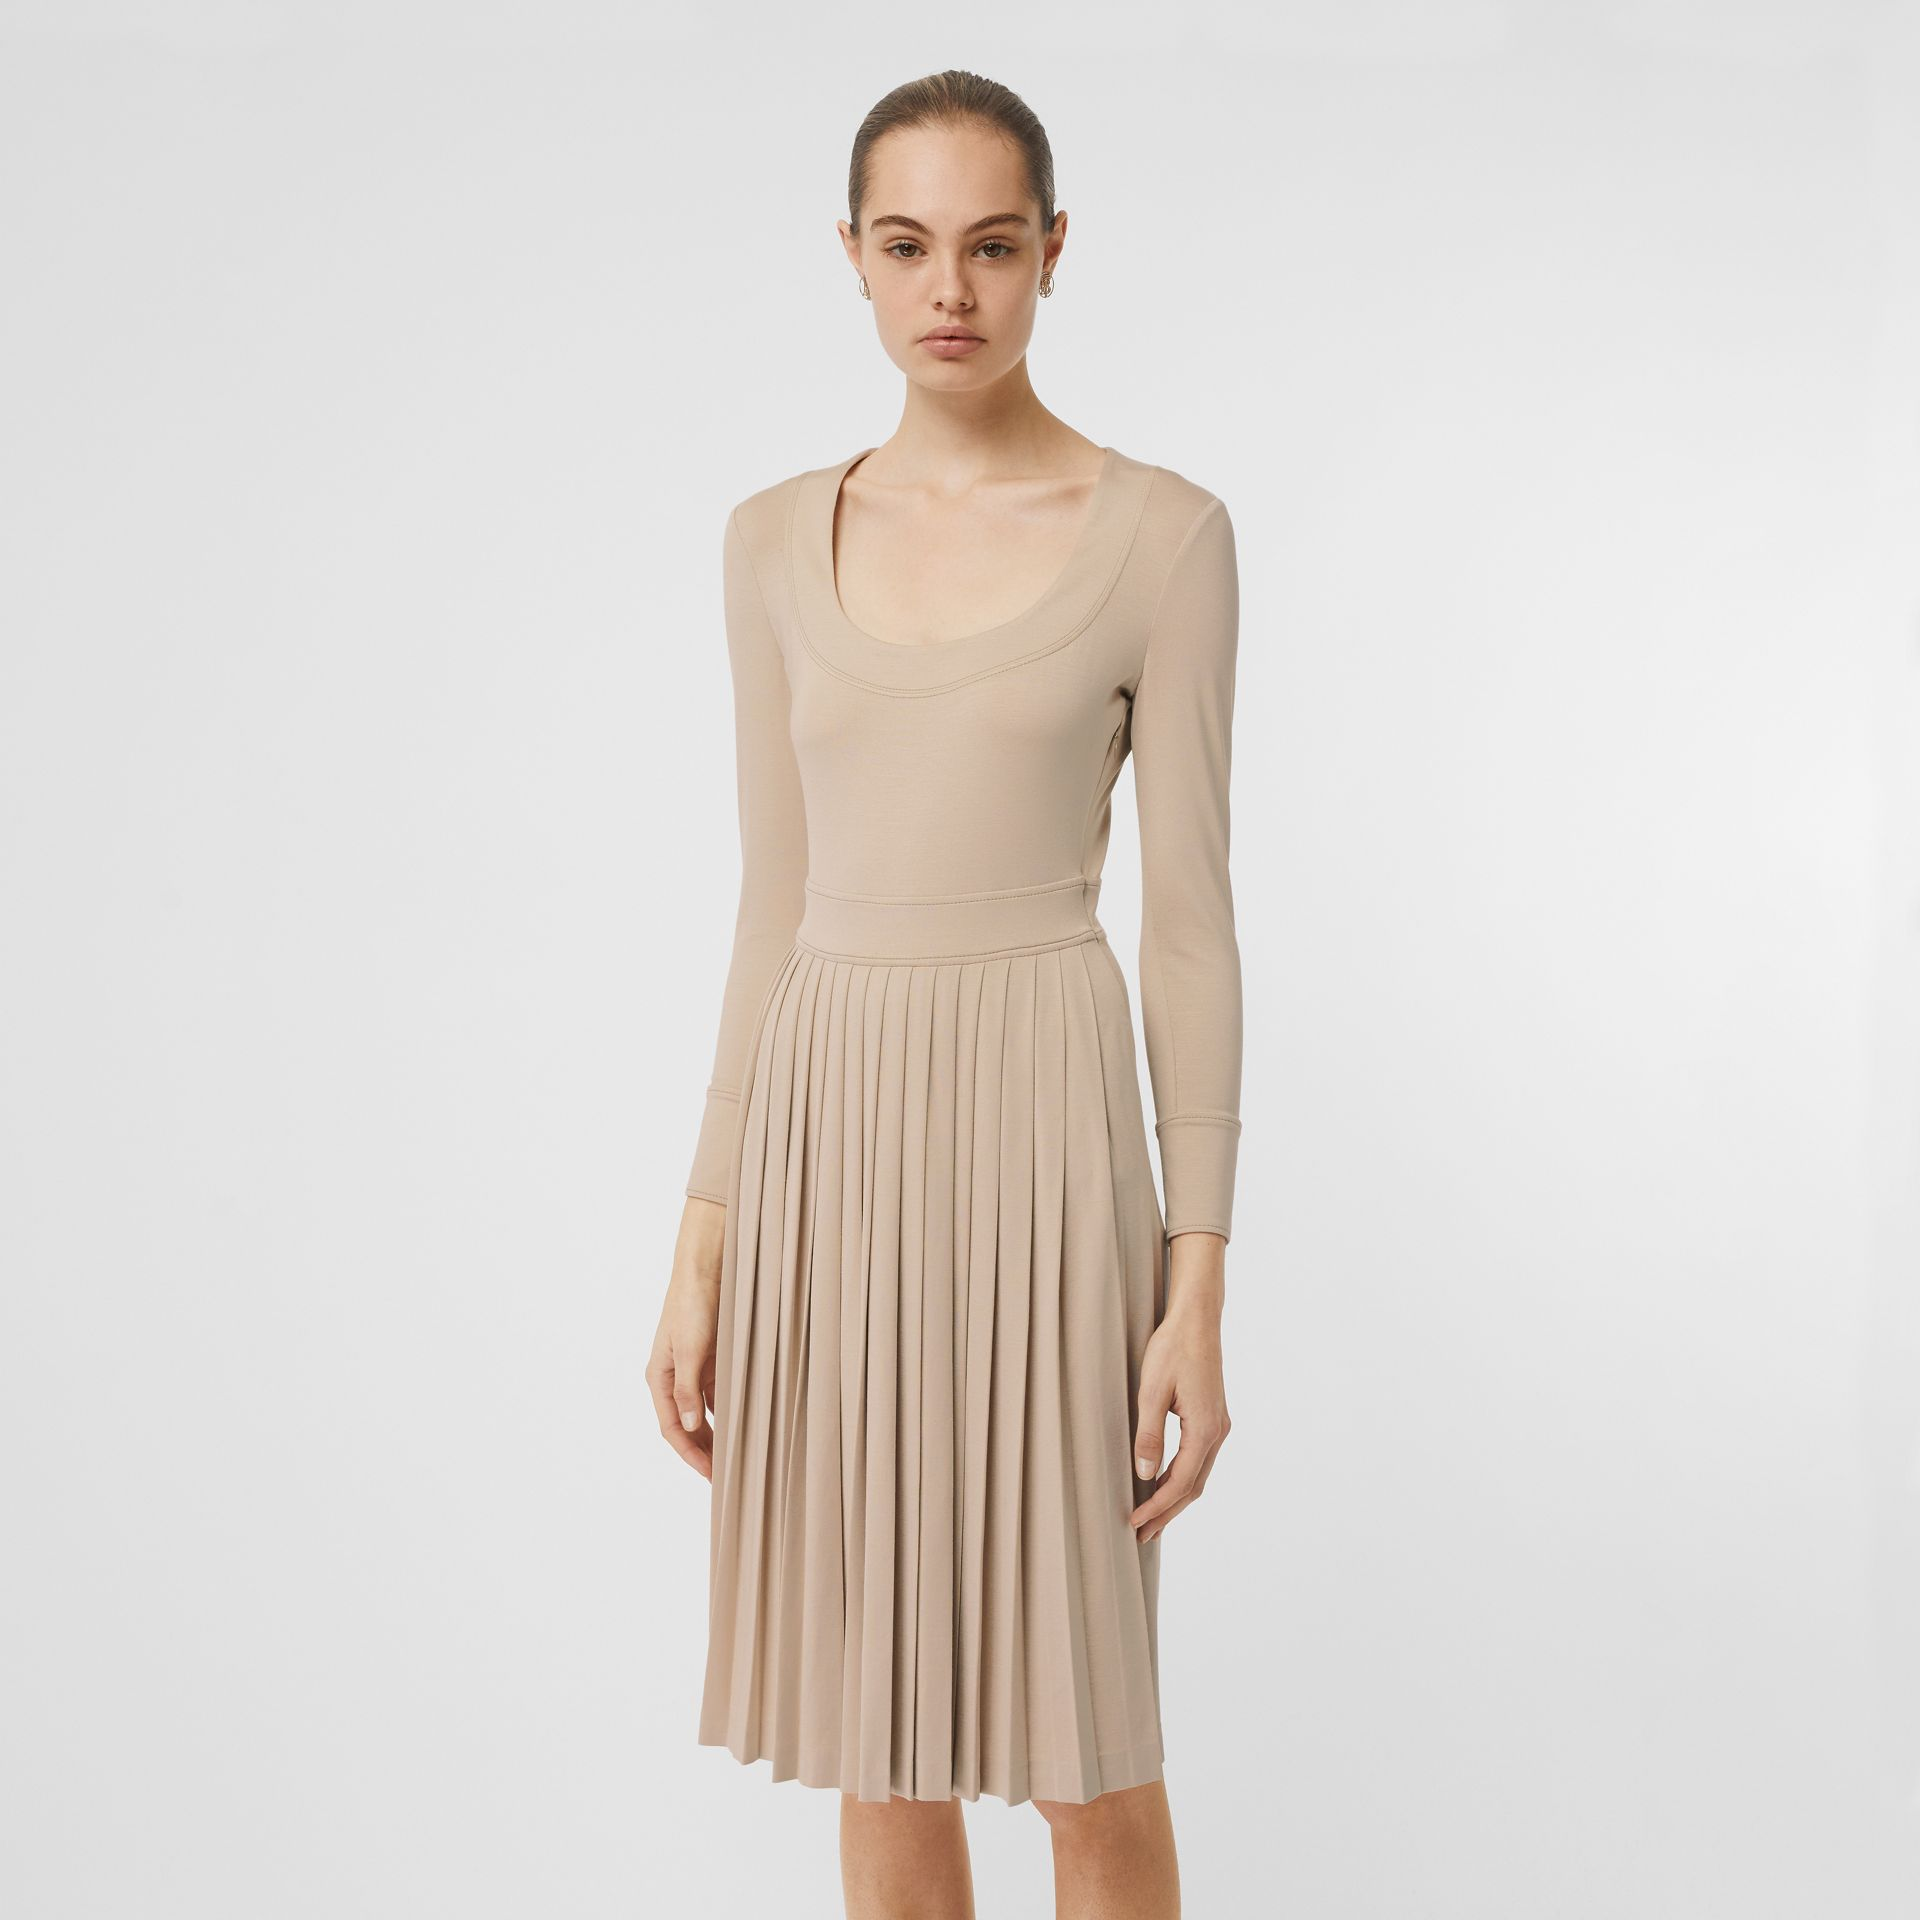 Long-sleeve Pleated Dress in Teddy Beige - Women | Burberry Hong Kong S.A.R - gallery image 0